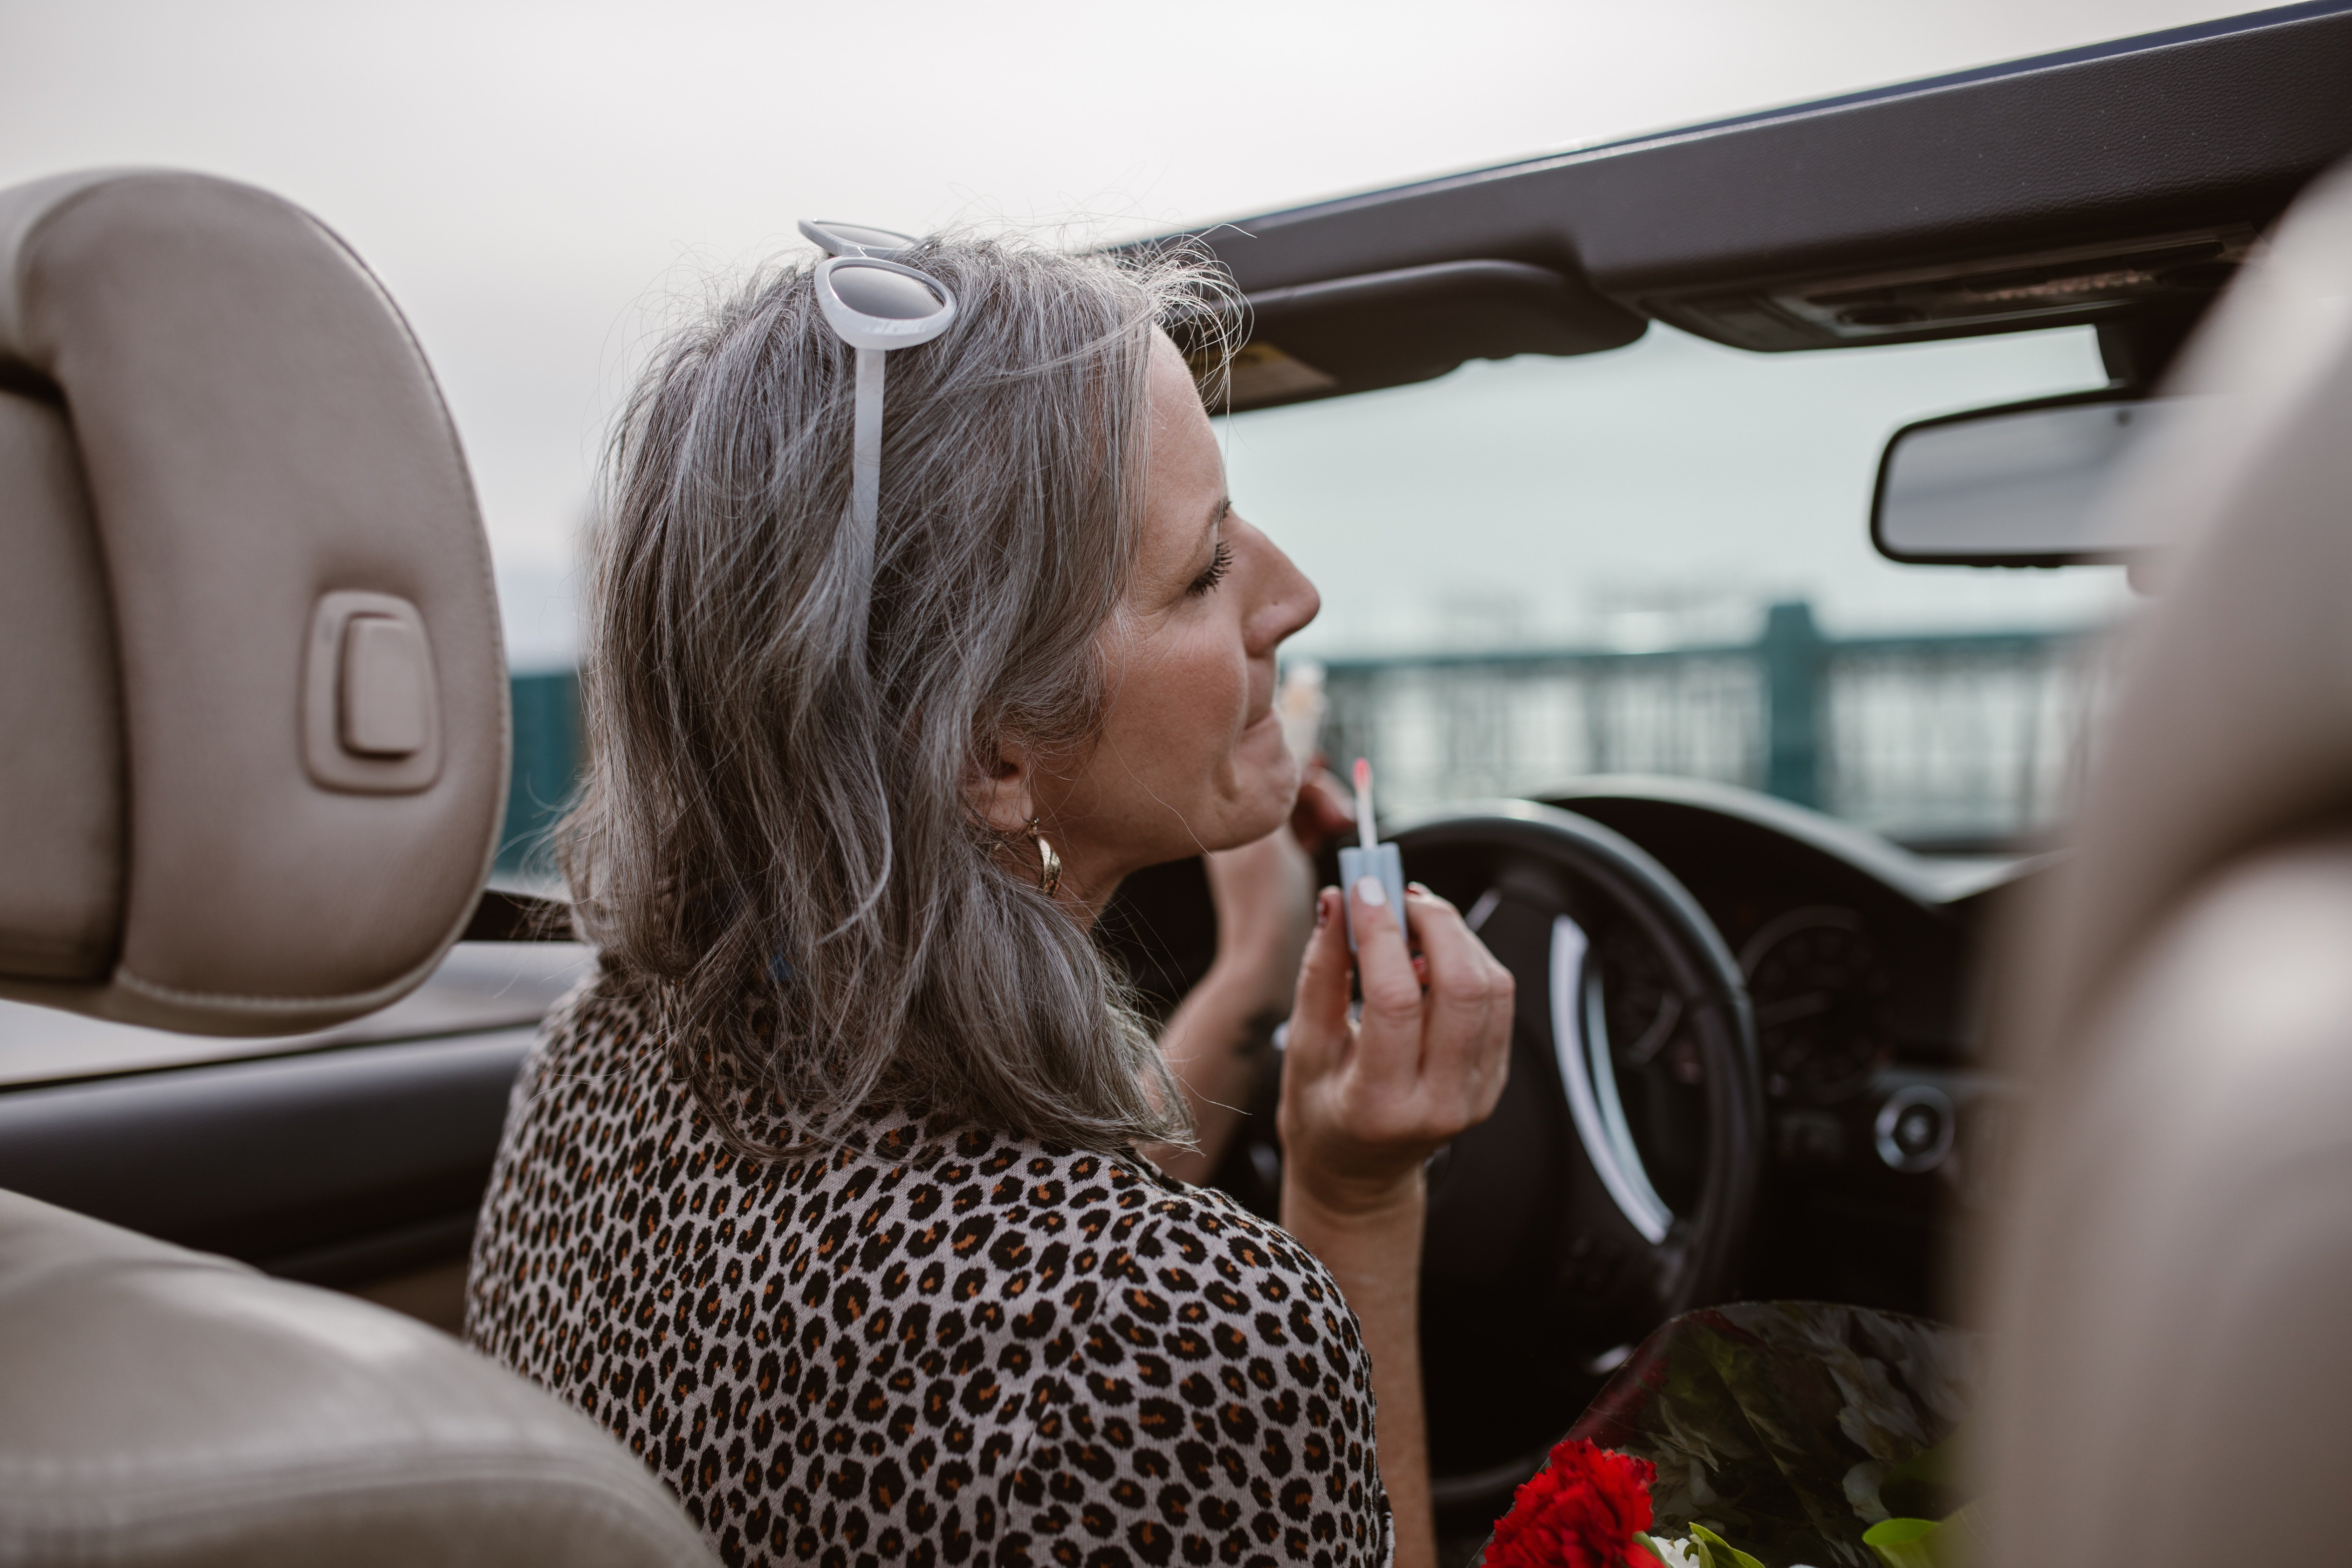 A lady sitting behind the wheel putting lipstick on.   Photo: Pexels